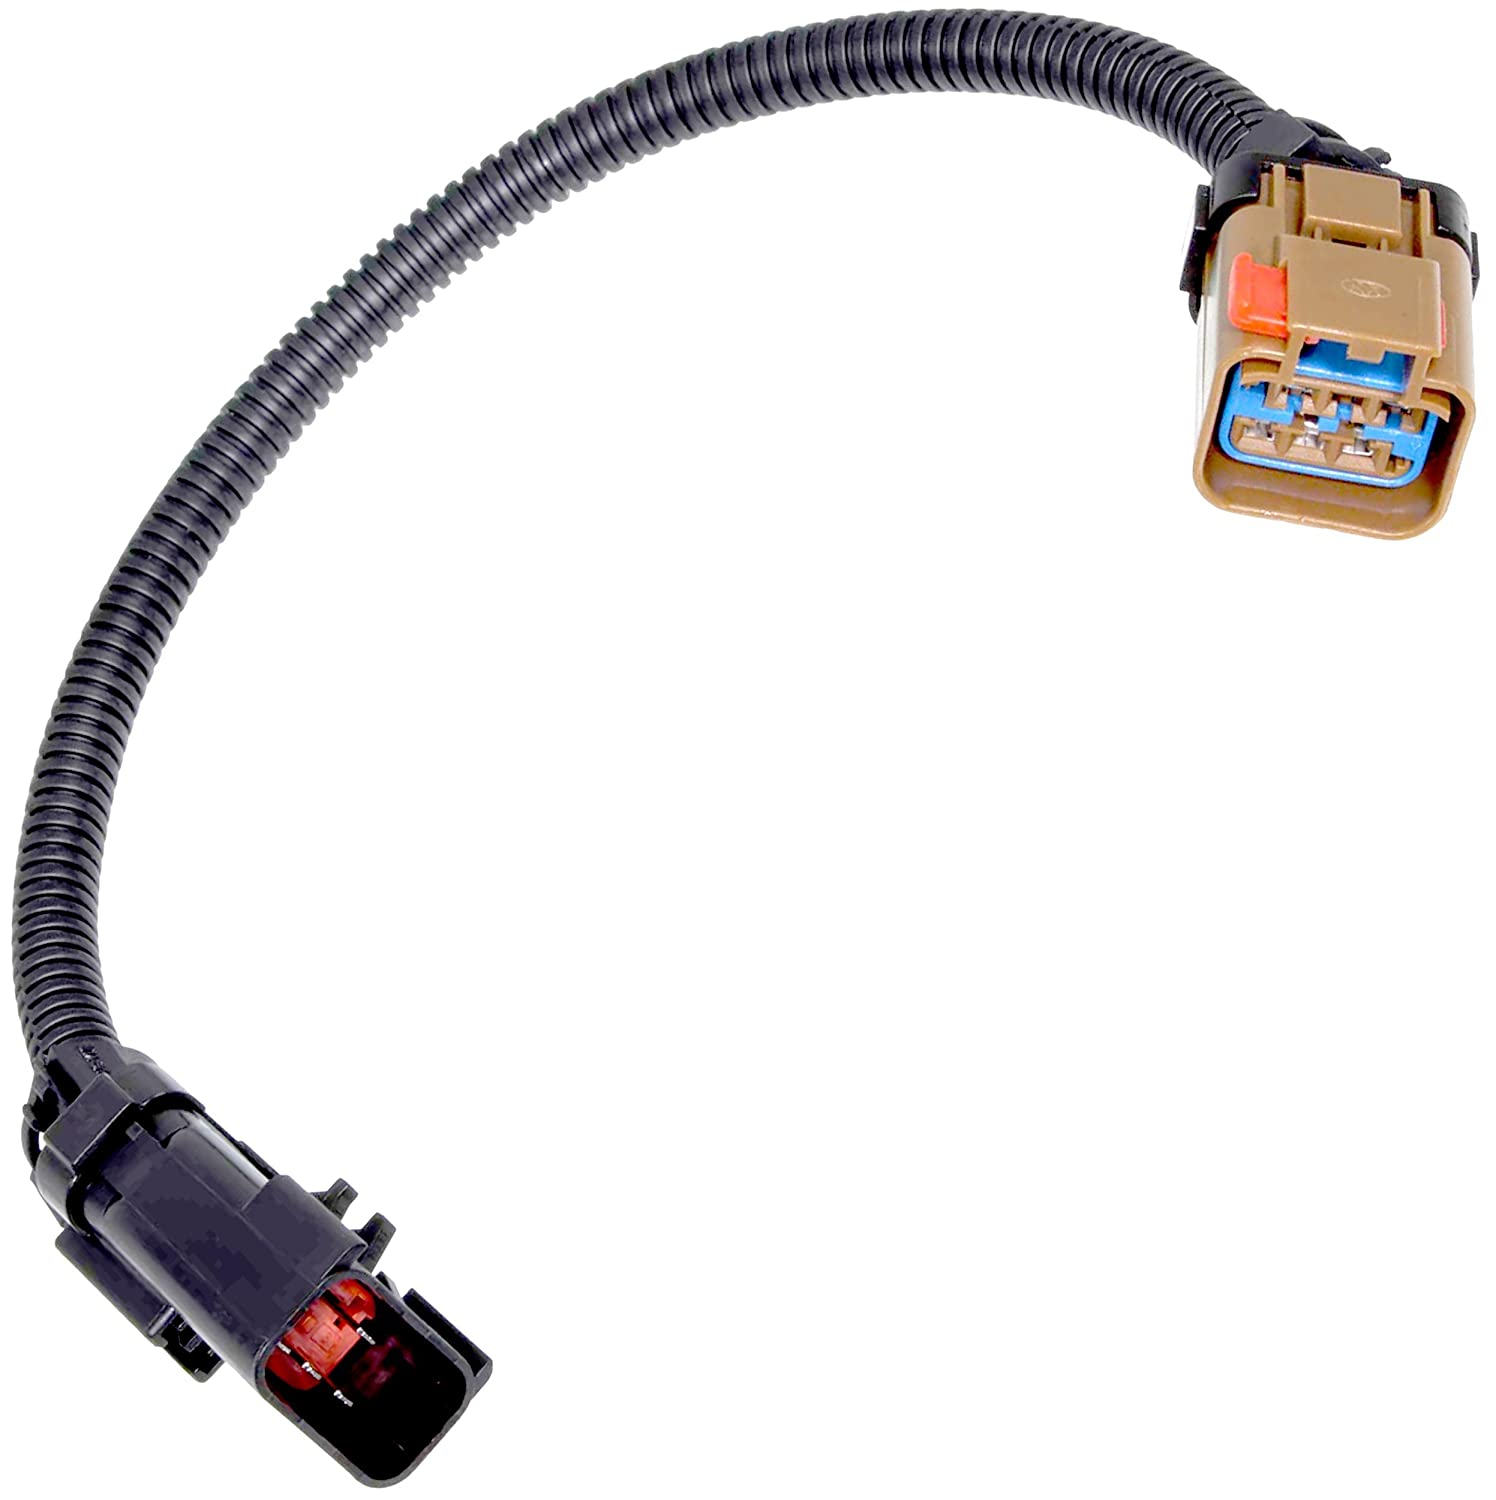 Apdty 112854 Wiring Harness Pigtail Connector Taillight 4 Prong Trailer Diagram 2003 Dodge Ram 1500 2002 Replaces 55077346aa 55077346ab Automotive